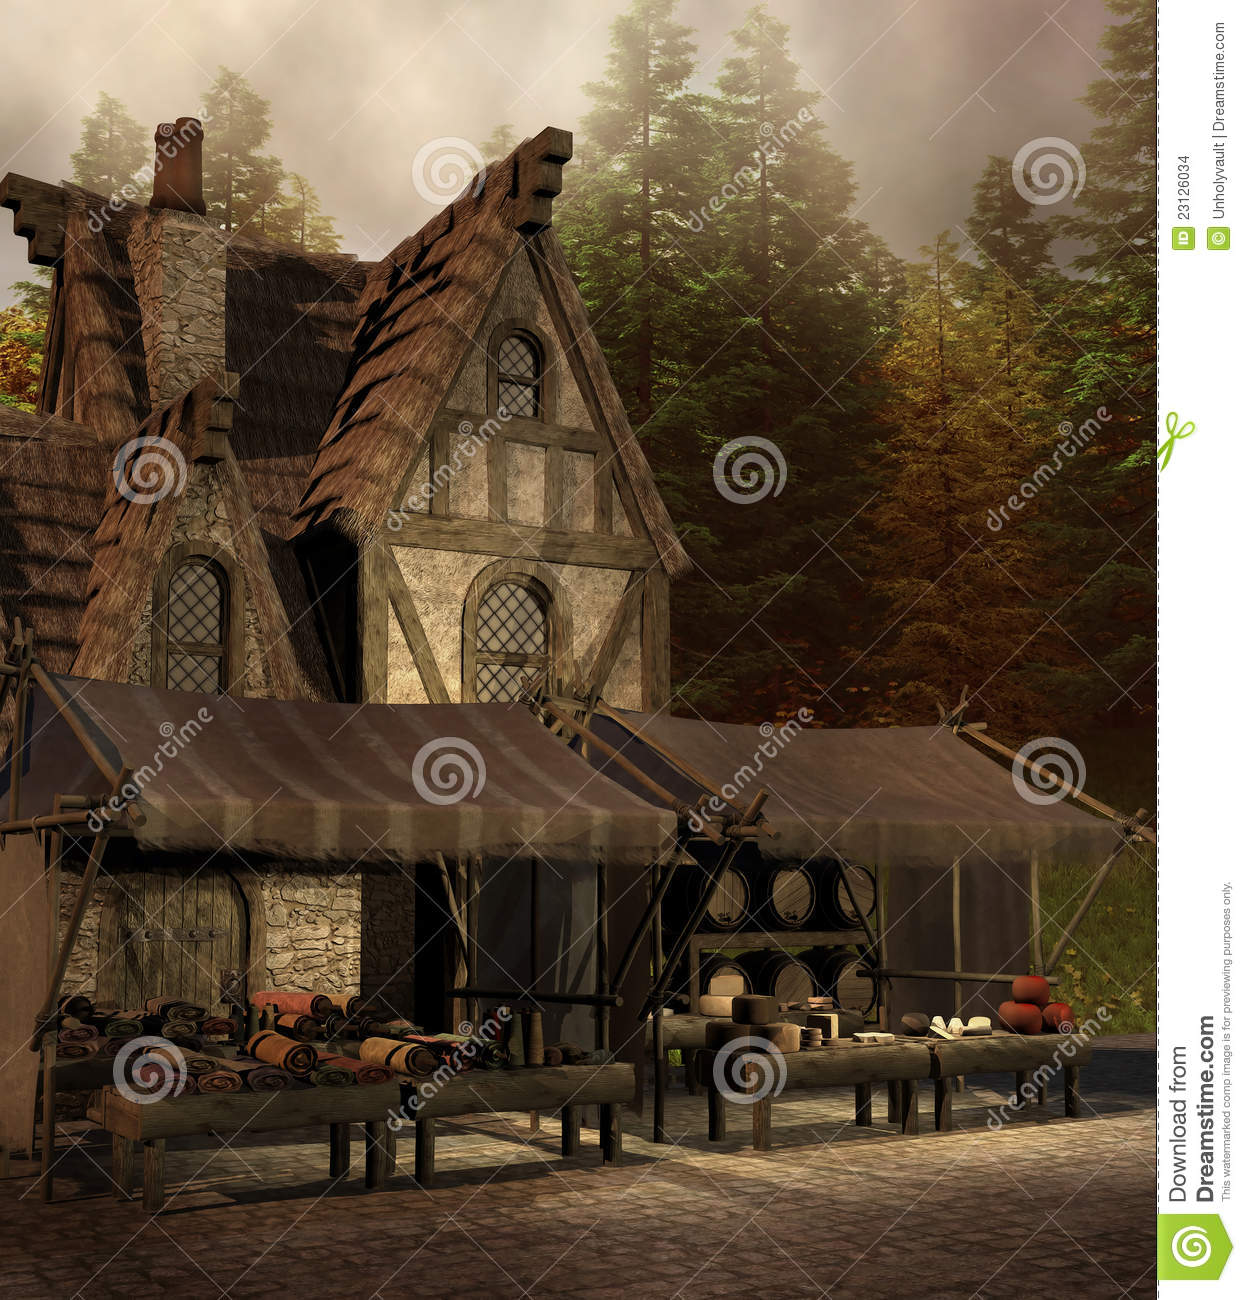 Medieval Shop And Market Stock Images - Image: 23126034